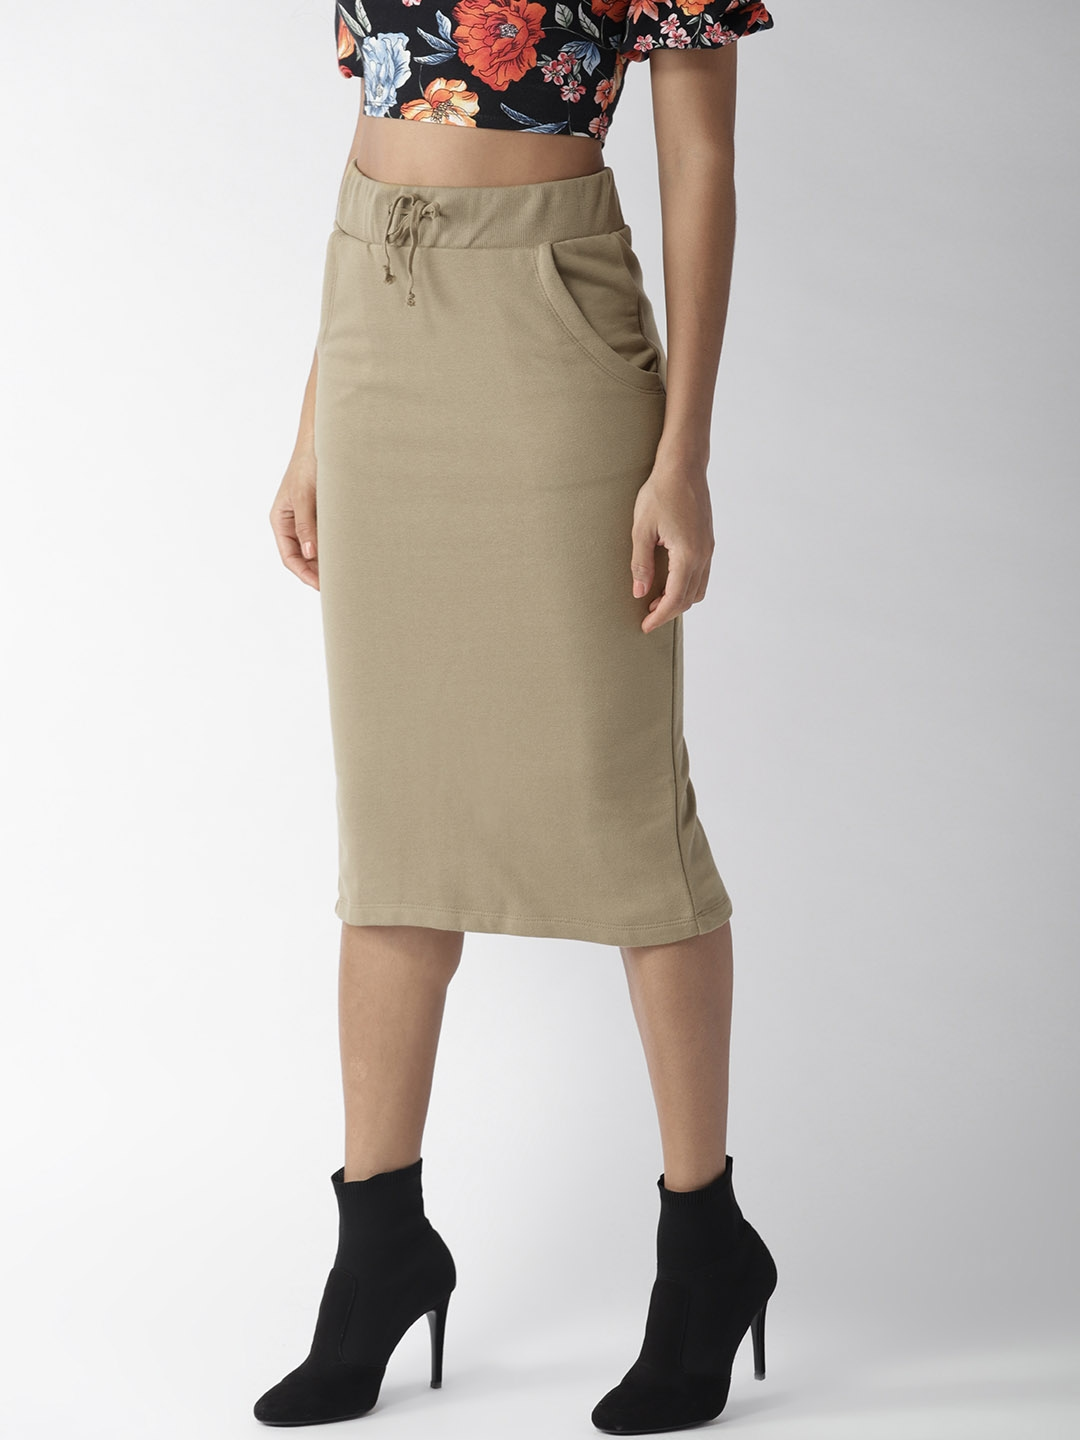 22d1e91f14 Buy FOREVER 21 Olive Brown Midi Pencil Skirt - Skirts for Women ...